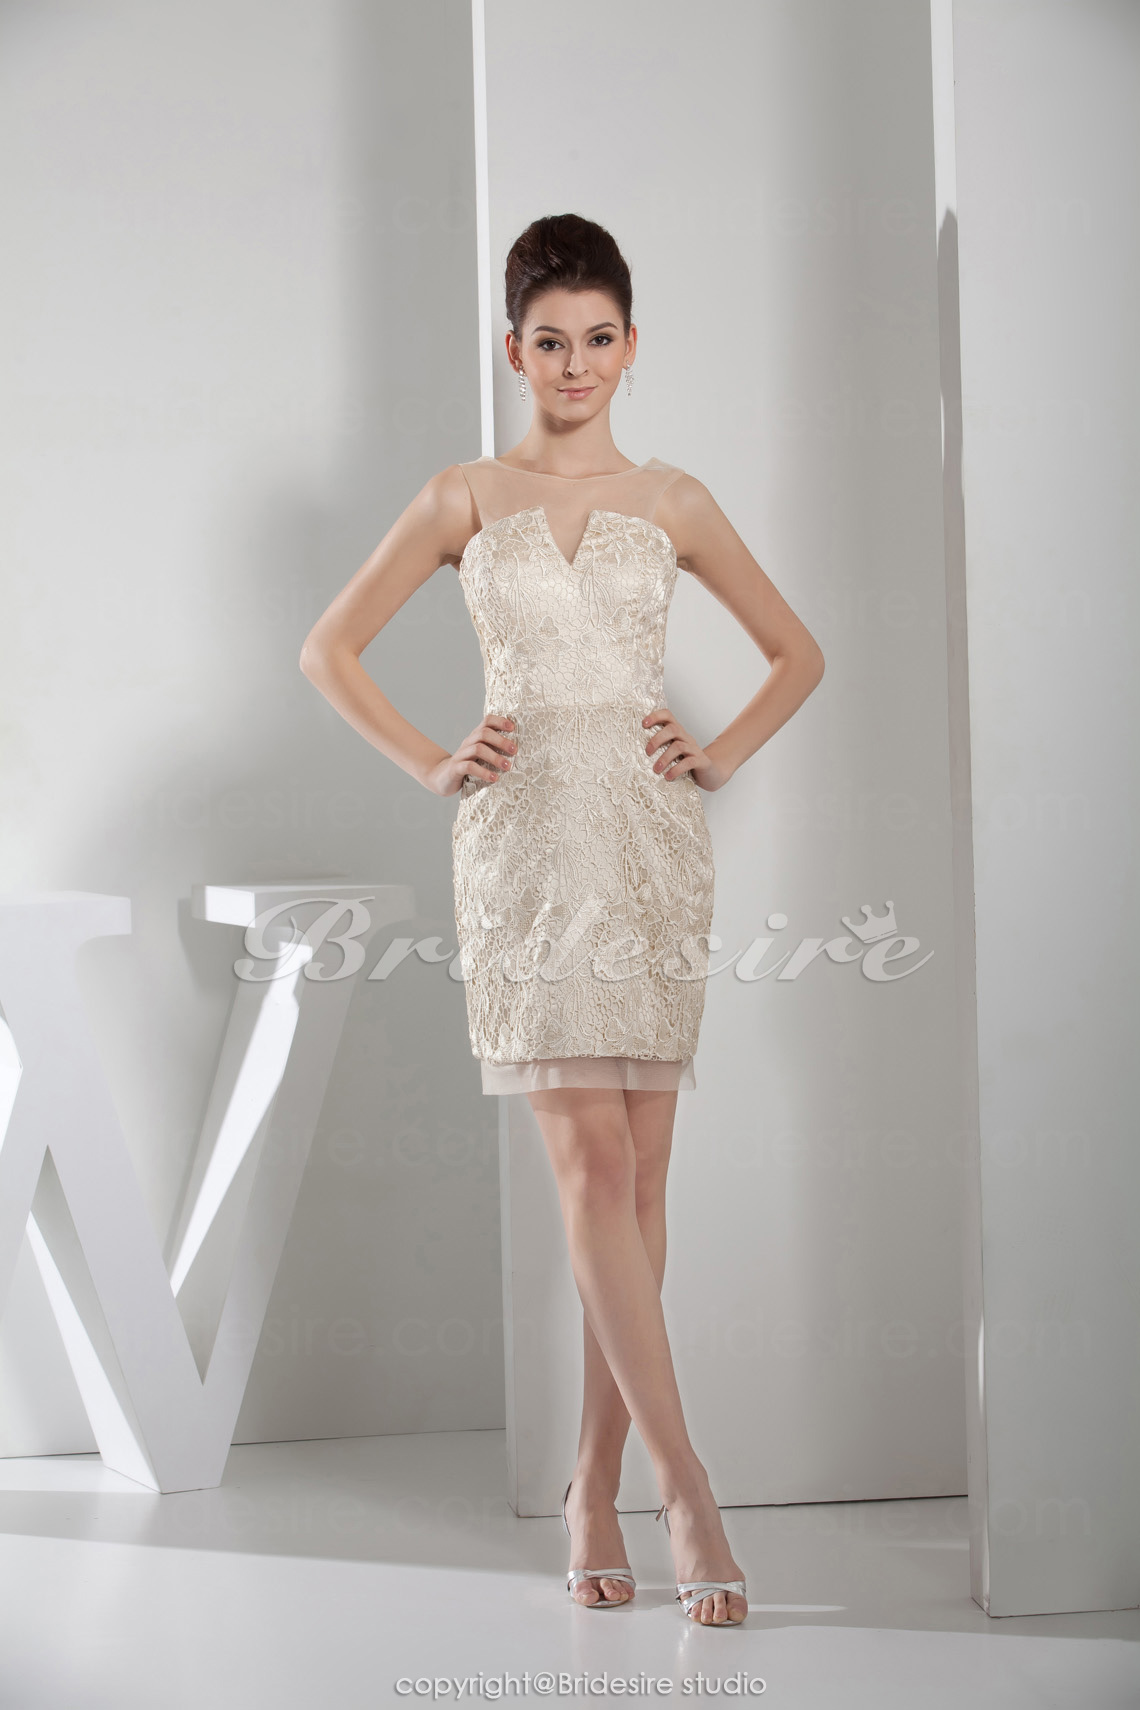 Sheath/Column Strapless Knee-length Sleeveless Satin Bridesmaid Dress